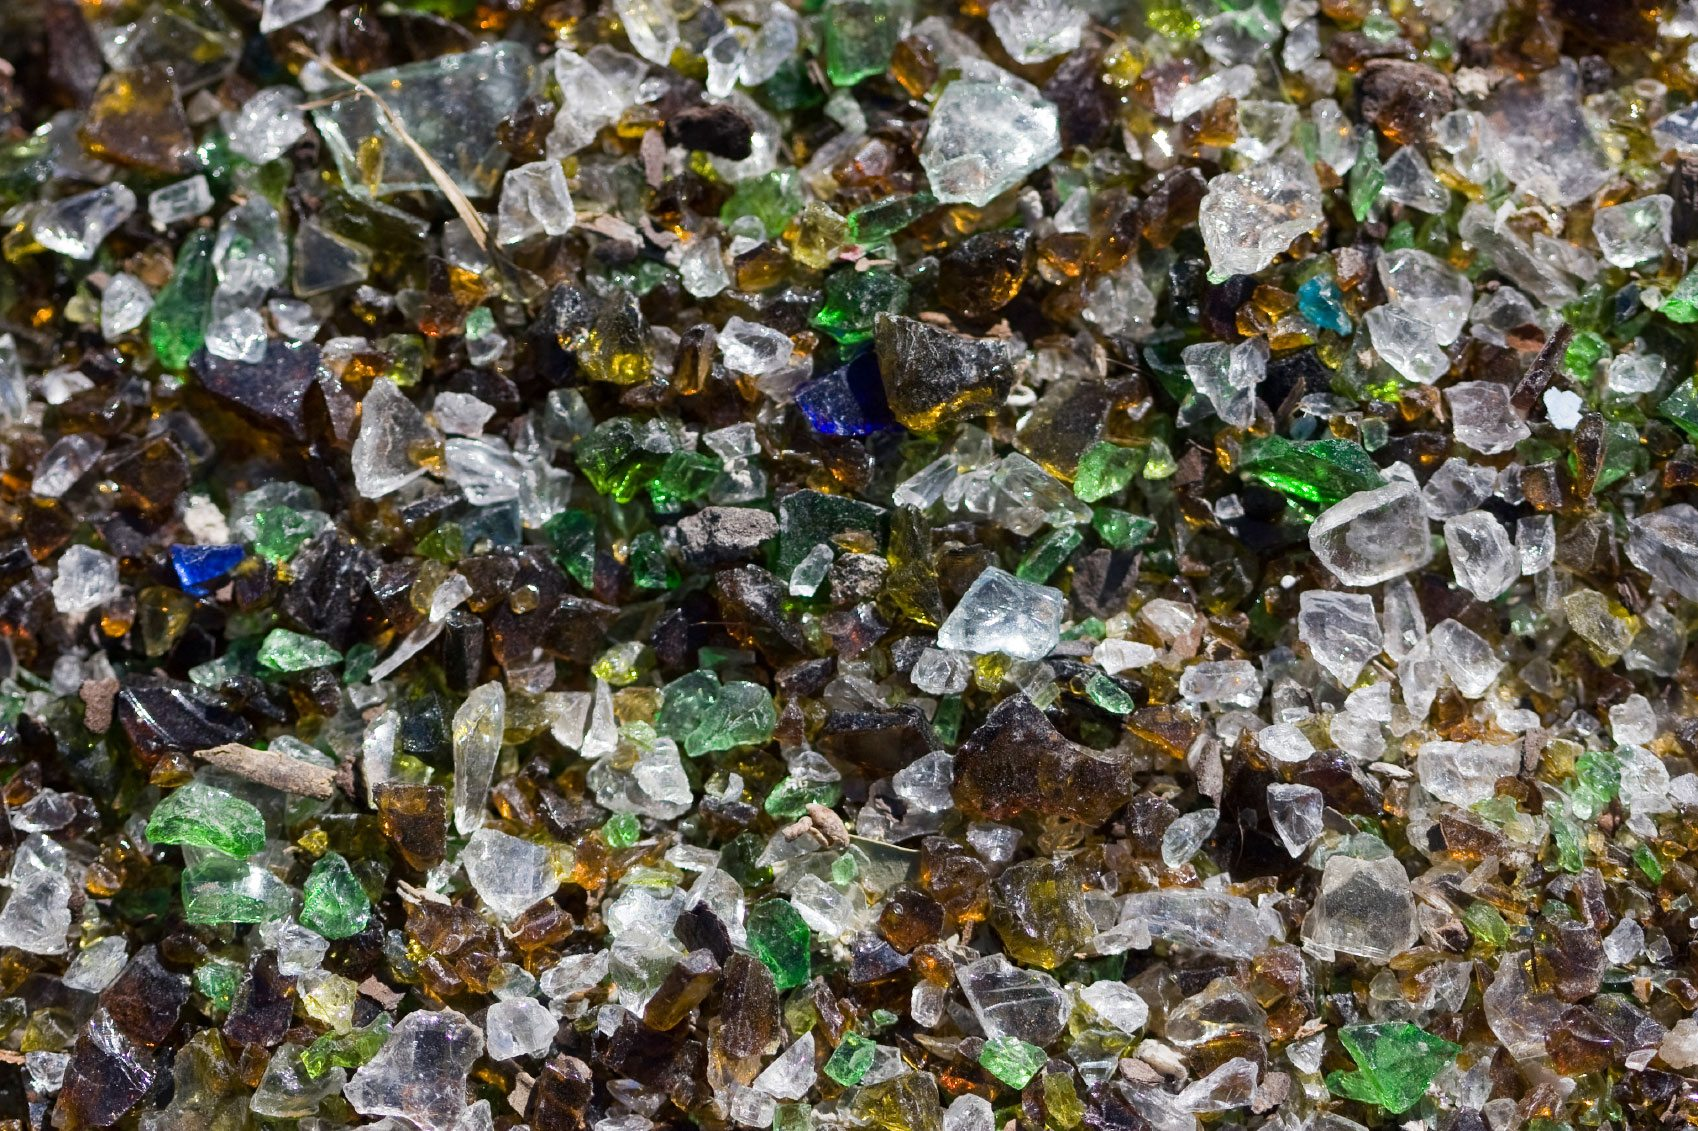 Tumbled glass mulch how to use recycled glass in gardens - Recycled glass for gardens ...